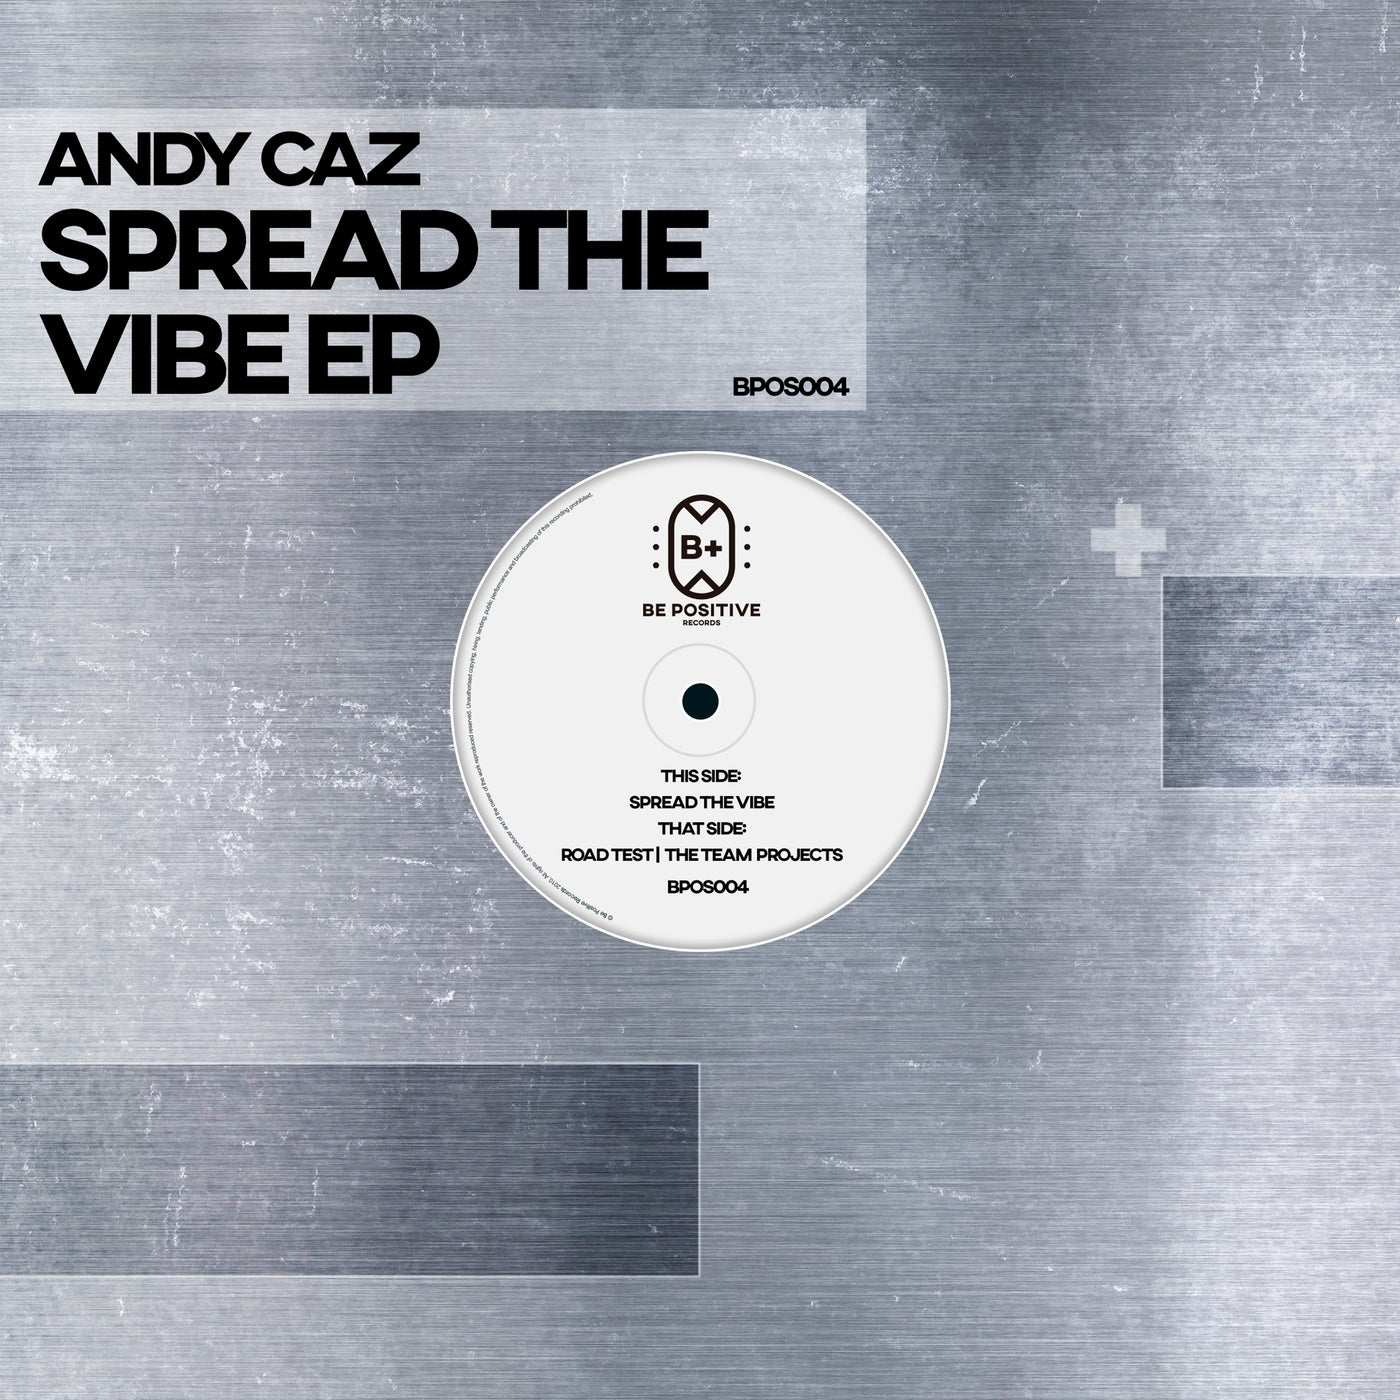 Andy Caz - Spread the Vibe (2021)